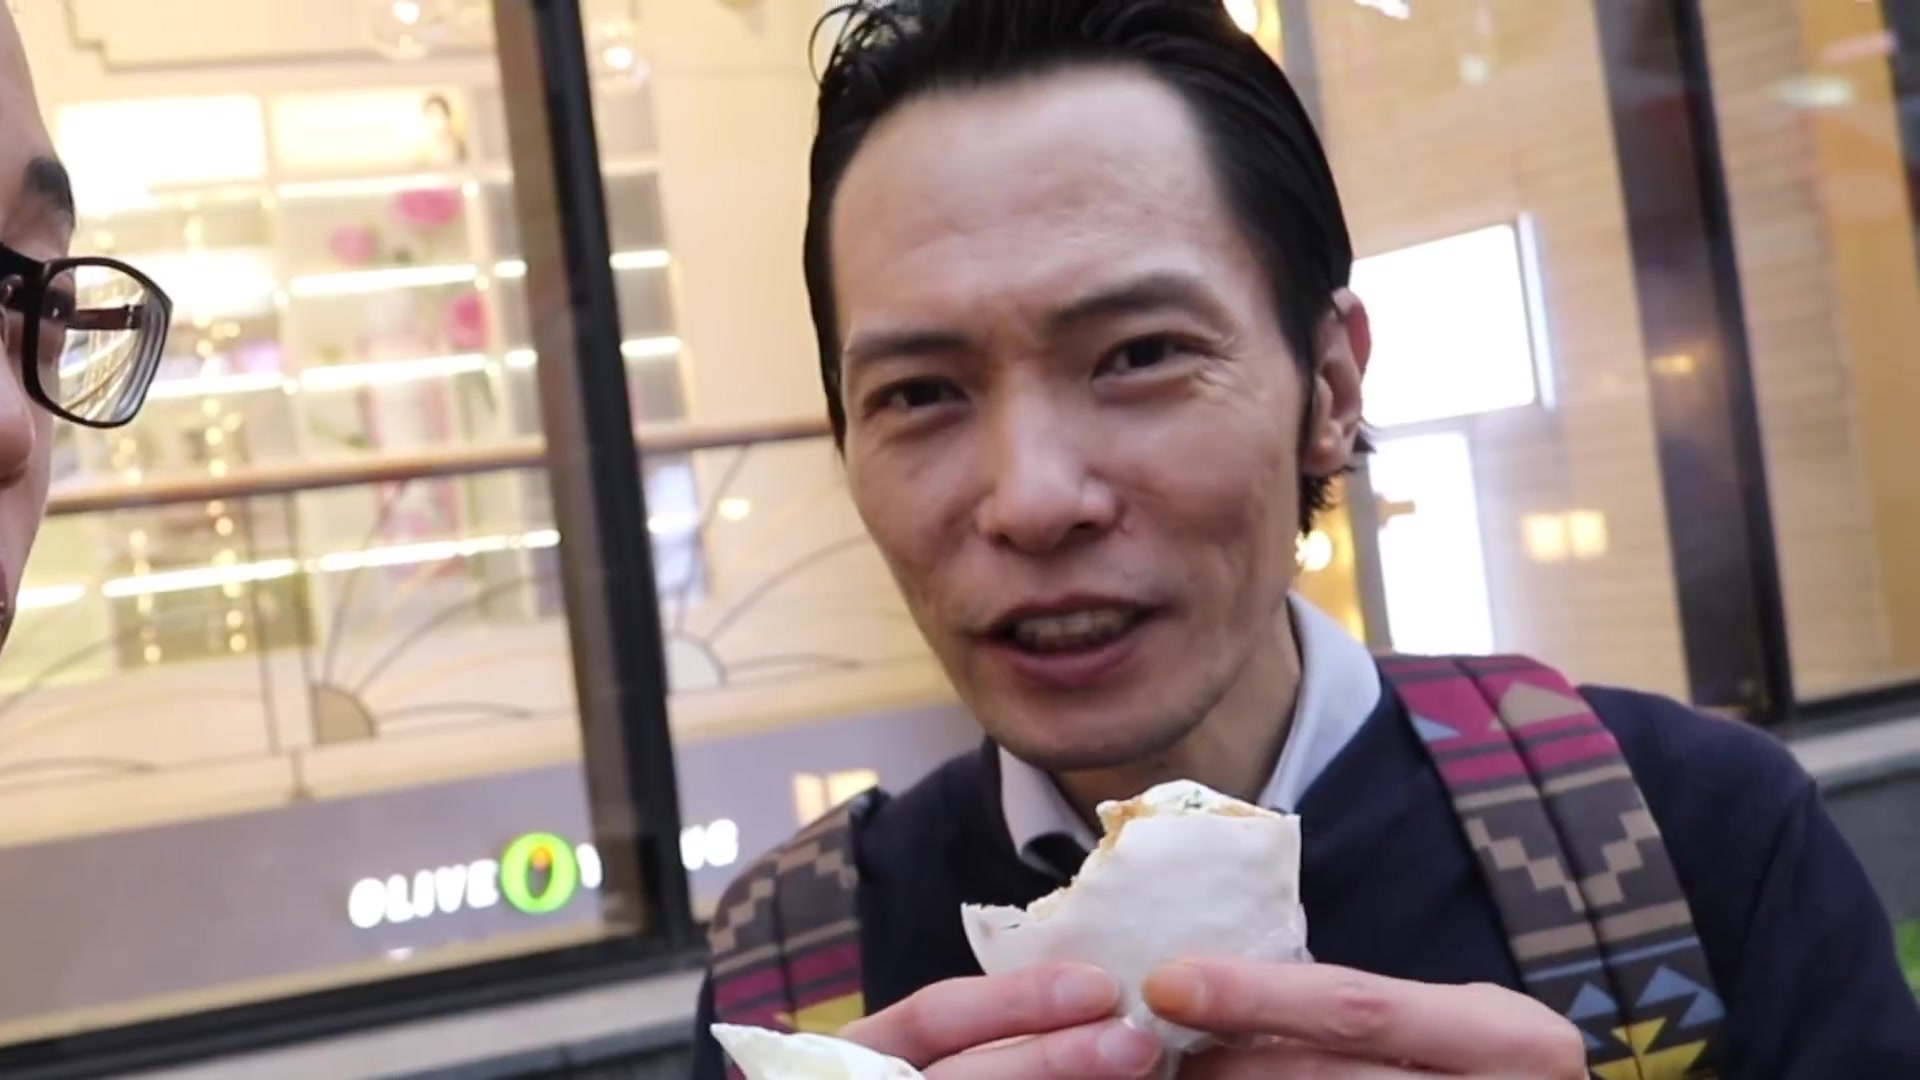 Todo Sobre Corea del Sur Episode 160: Amazing Korean Street Food in Busan: The Most Delicious Ice Cream in the World